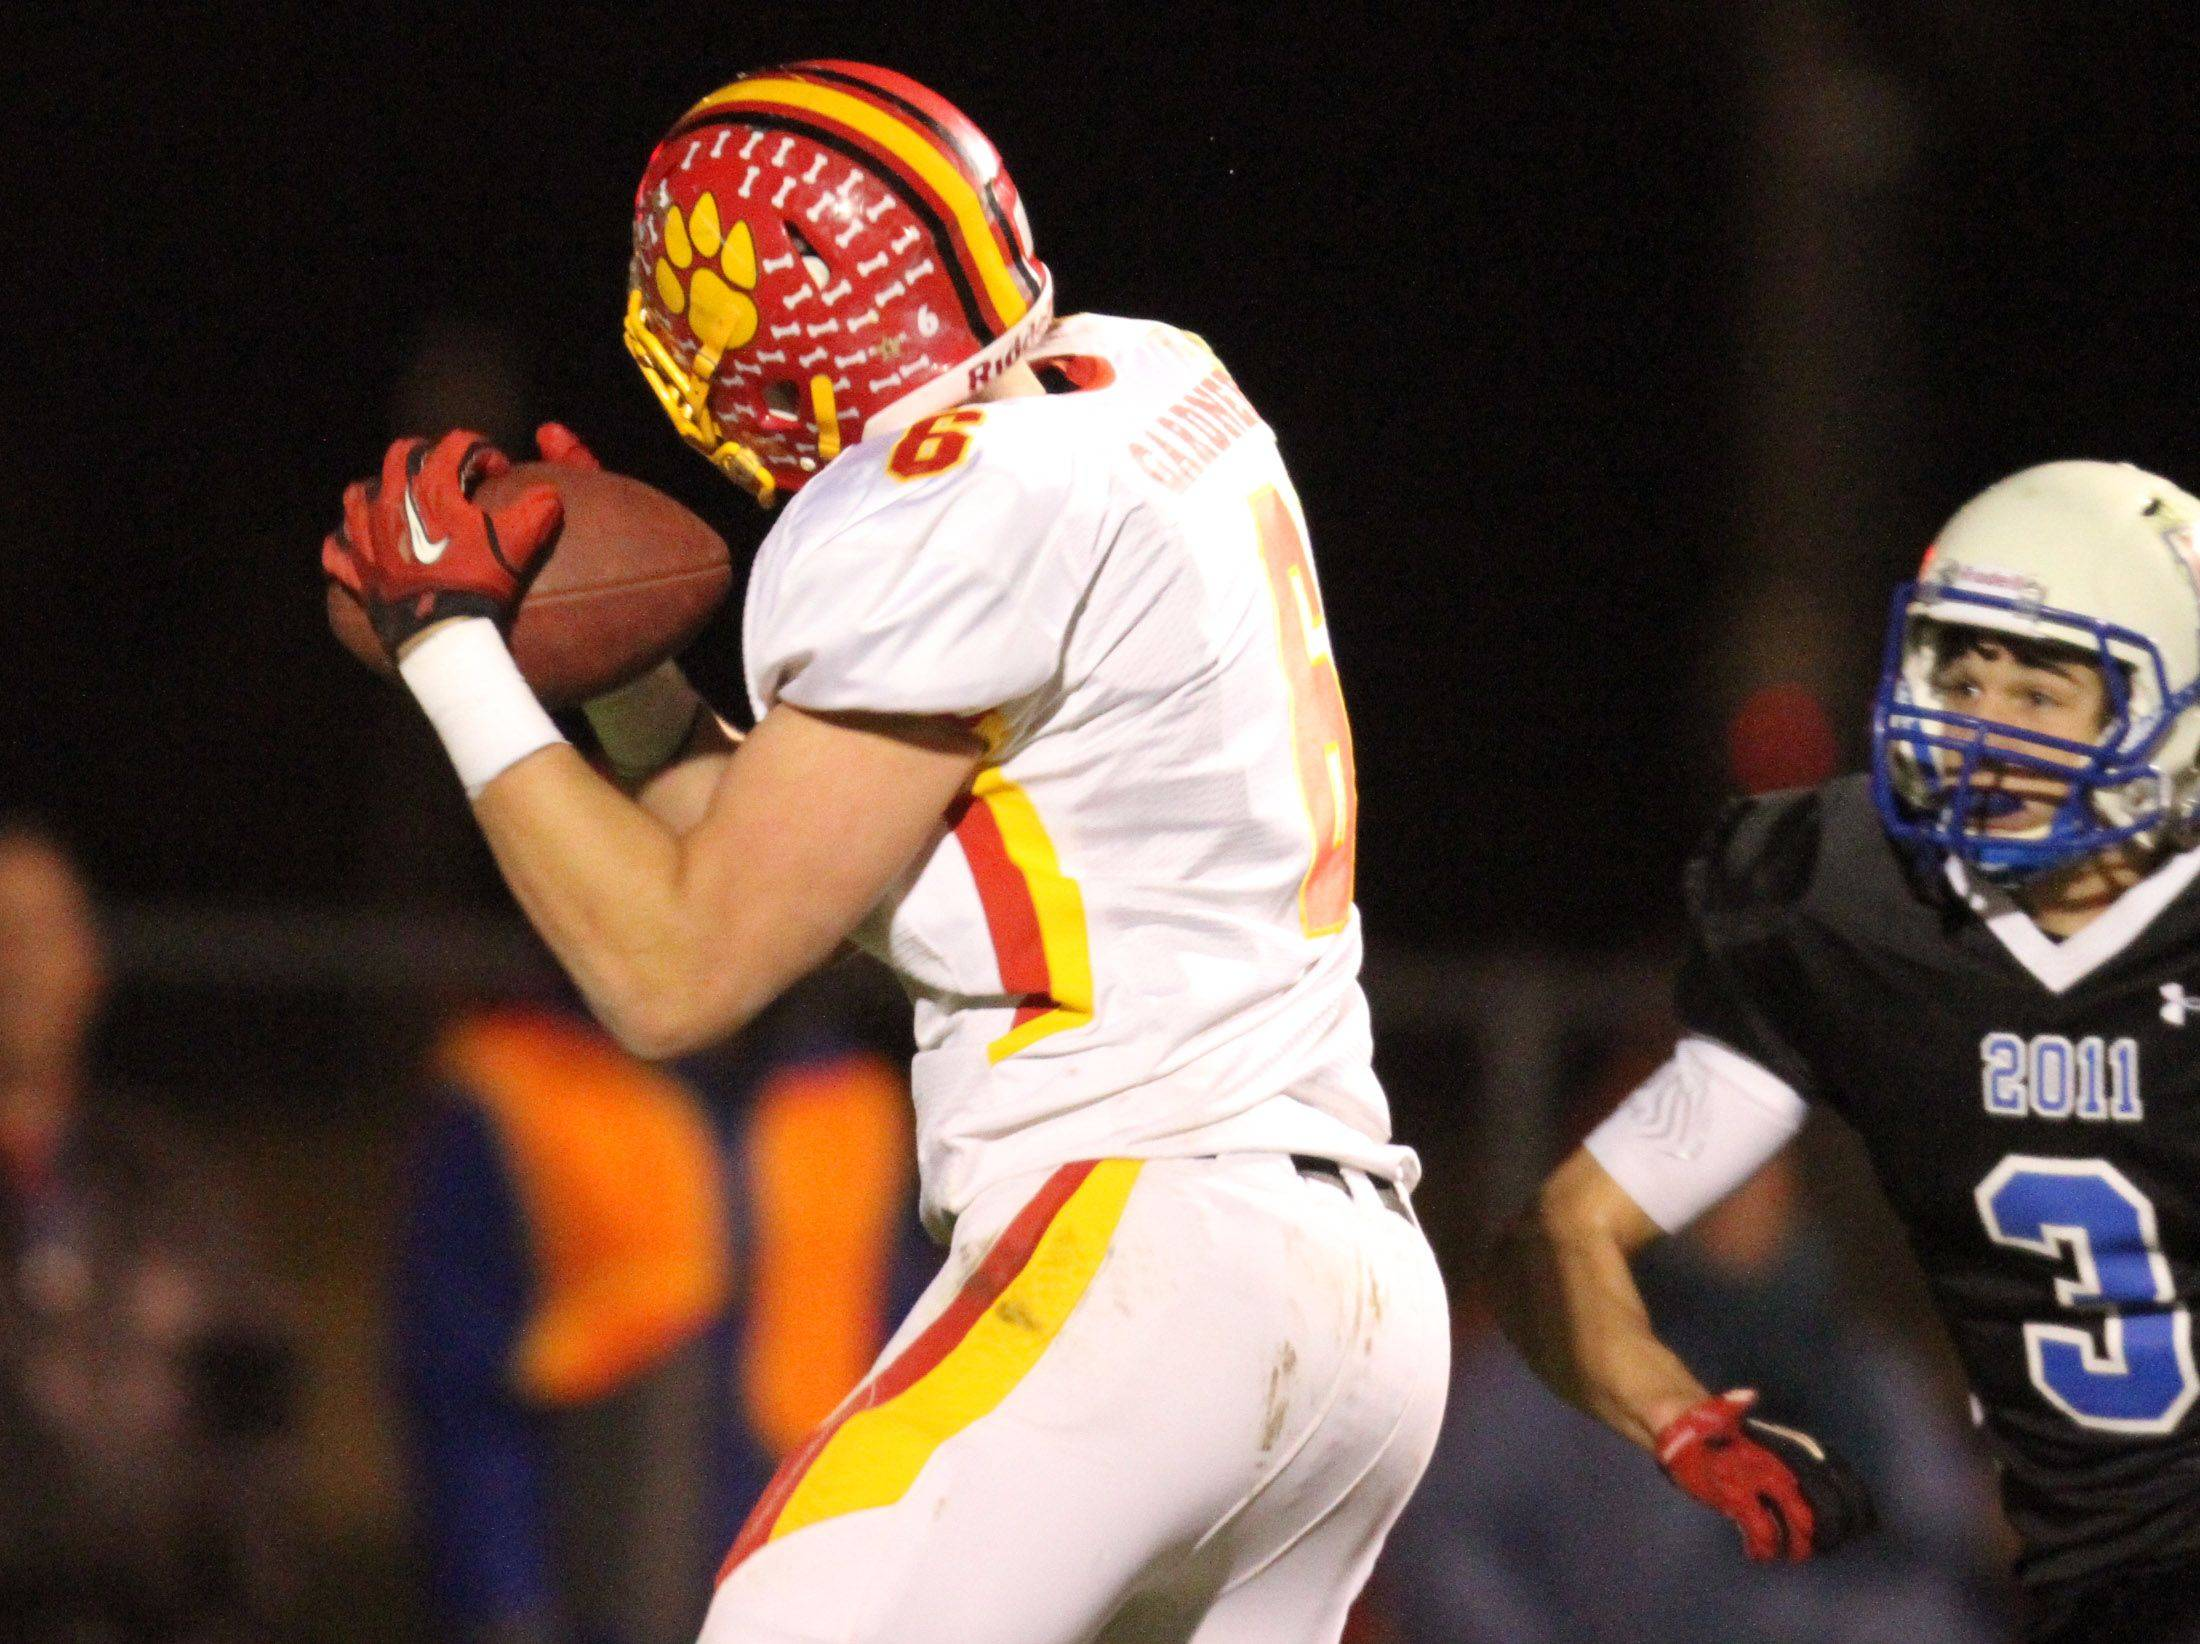 Images: Batavia vs. Lakes 6A football playoffs